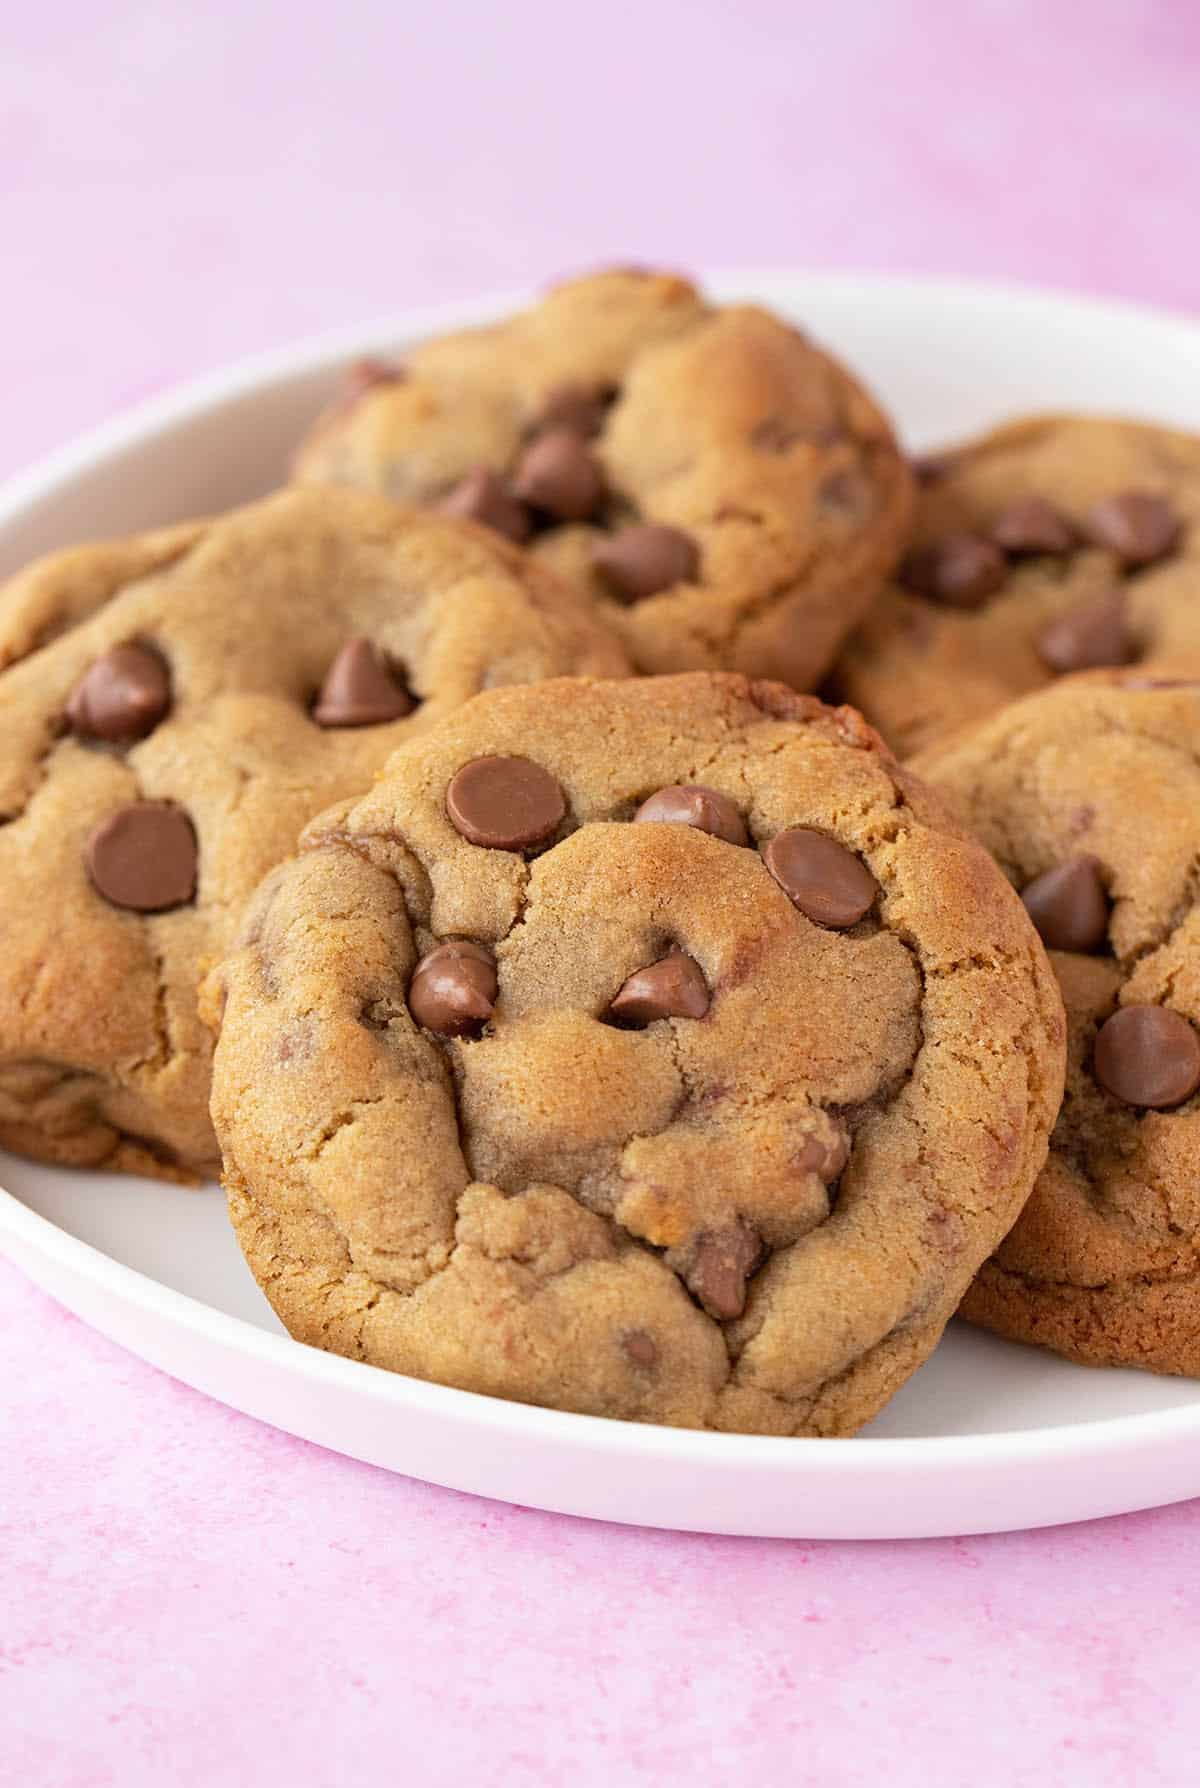 A plate of Chocolate Chip Cookies on a pink background